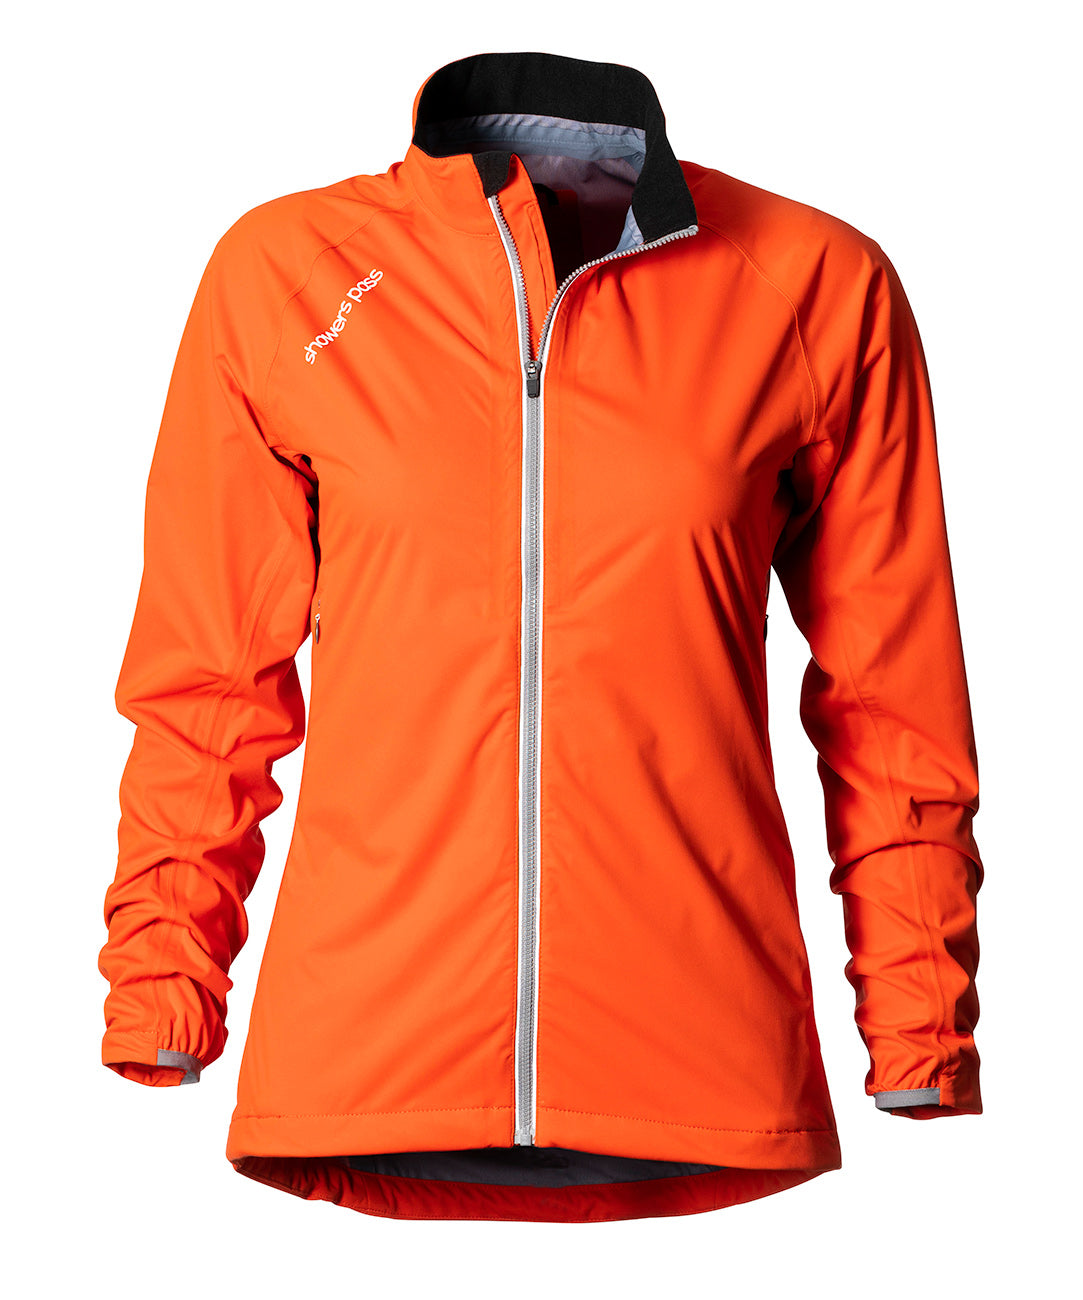 Women's Cloudburst Jacket